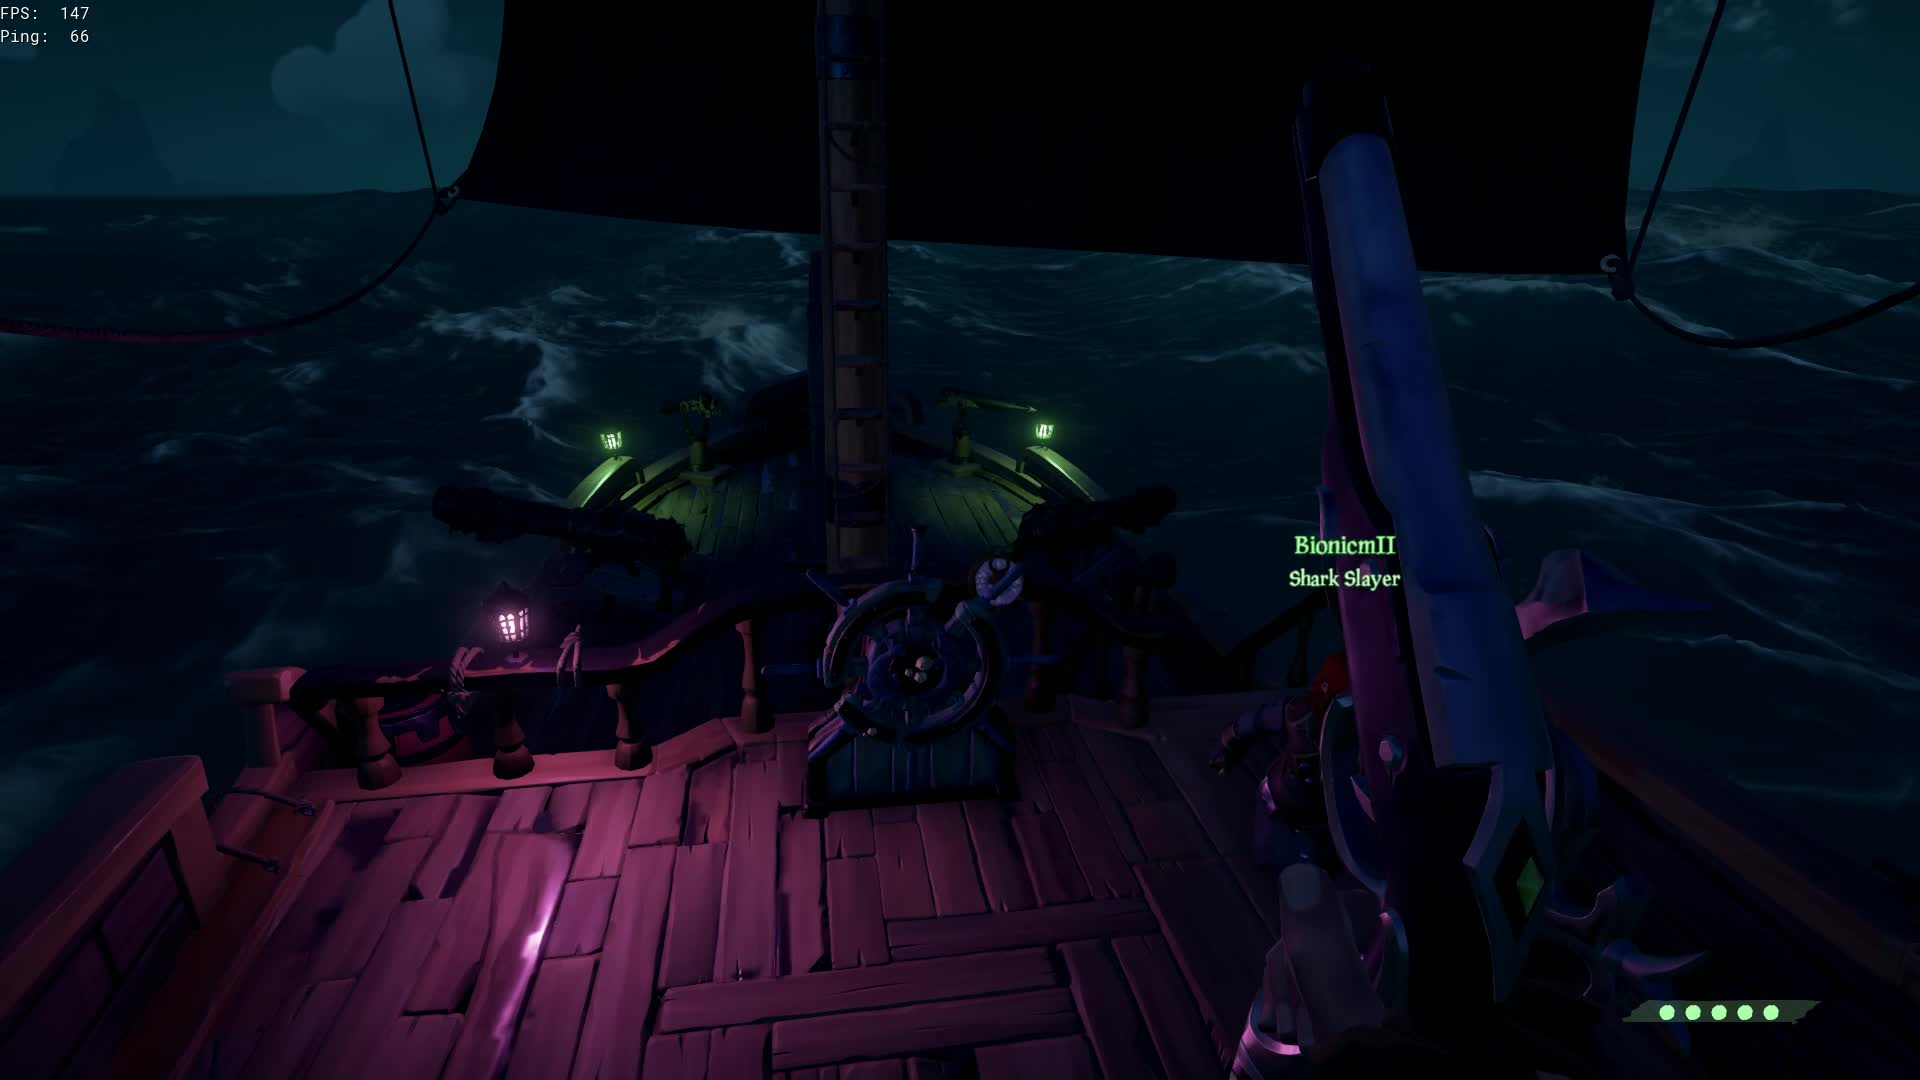 seaofthieves, Sea of snipes 2 GIFs